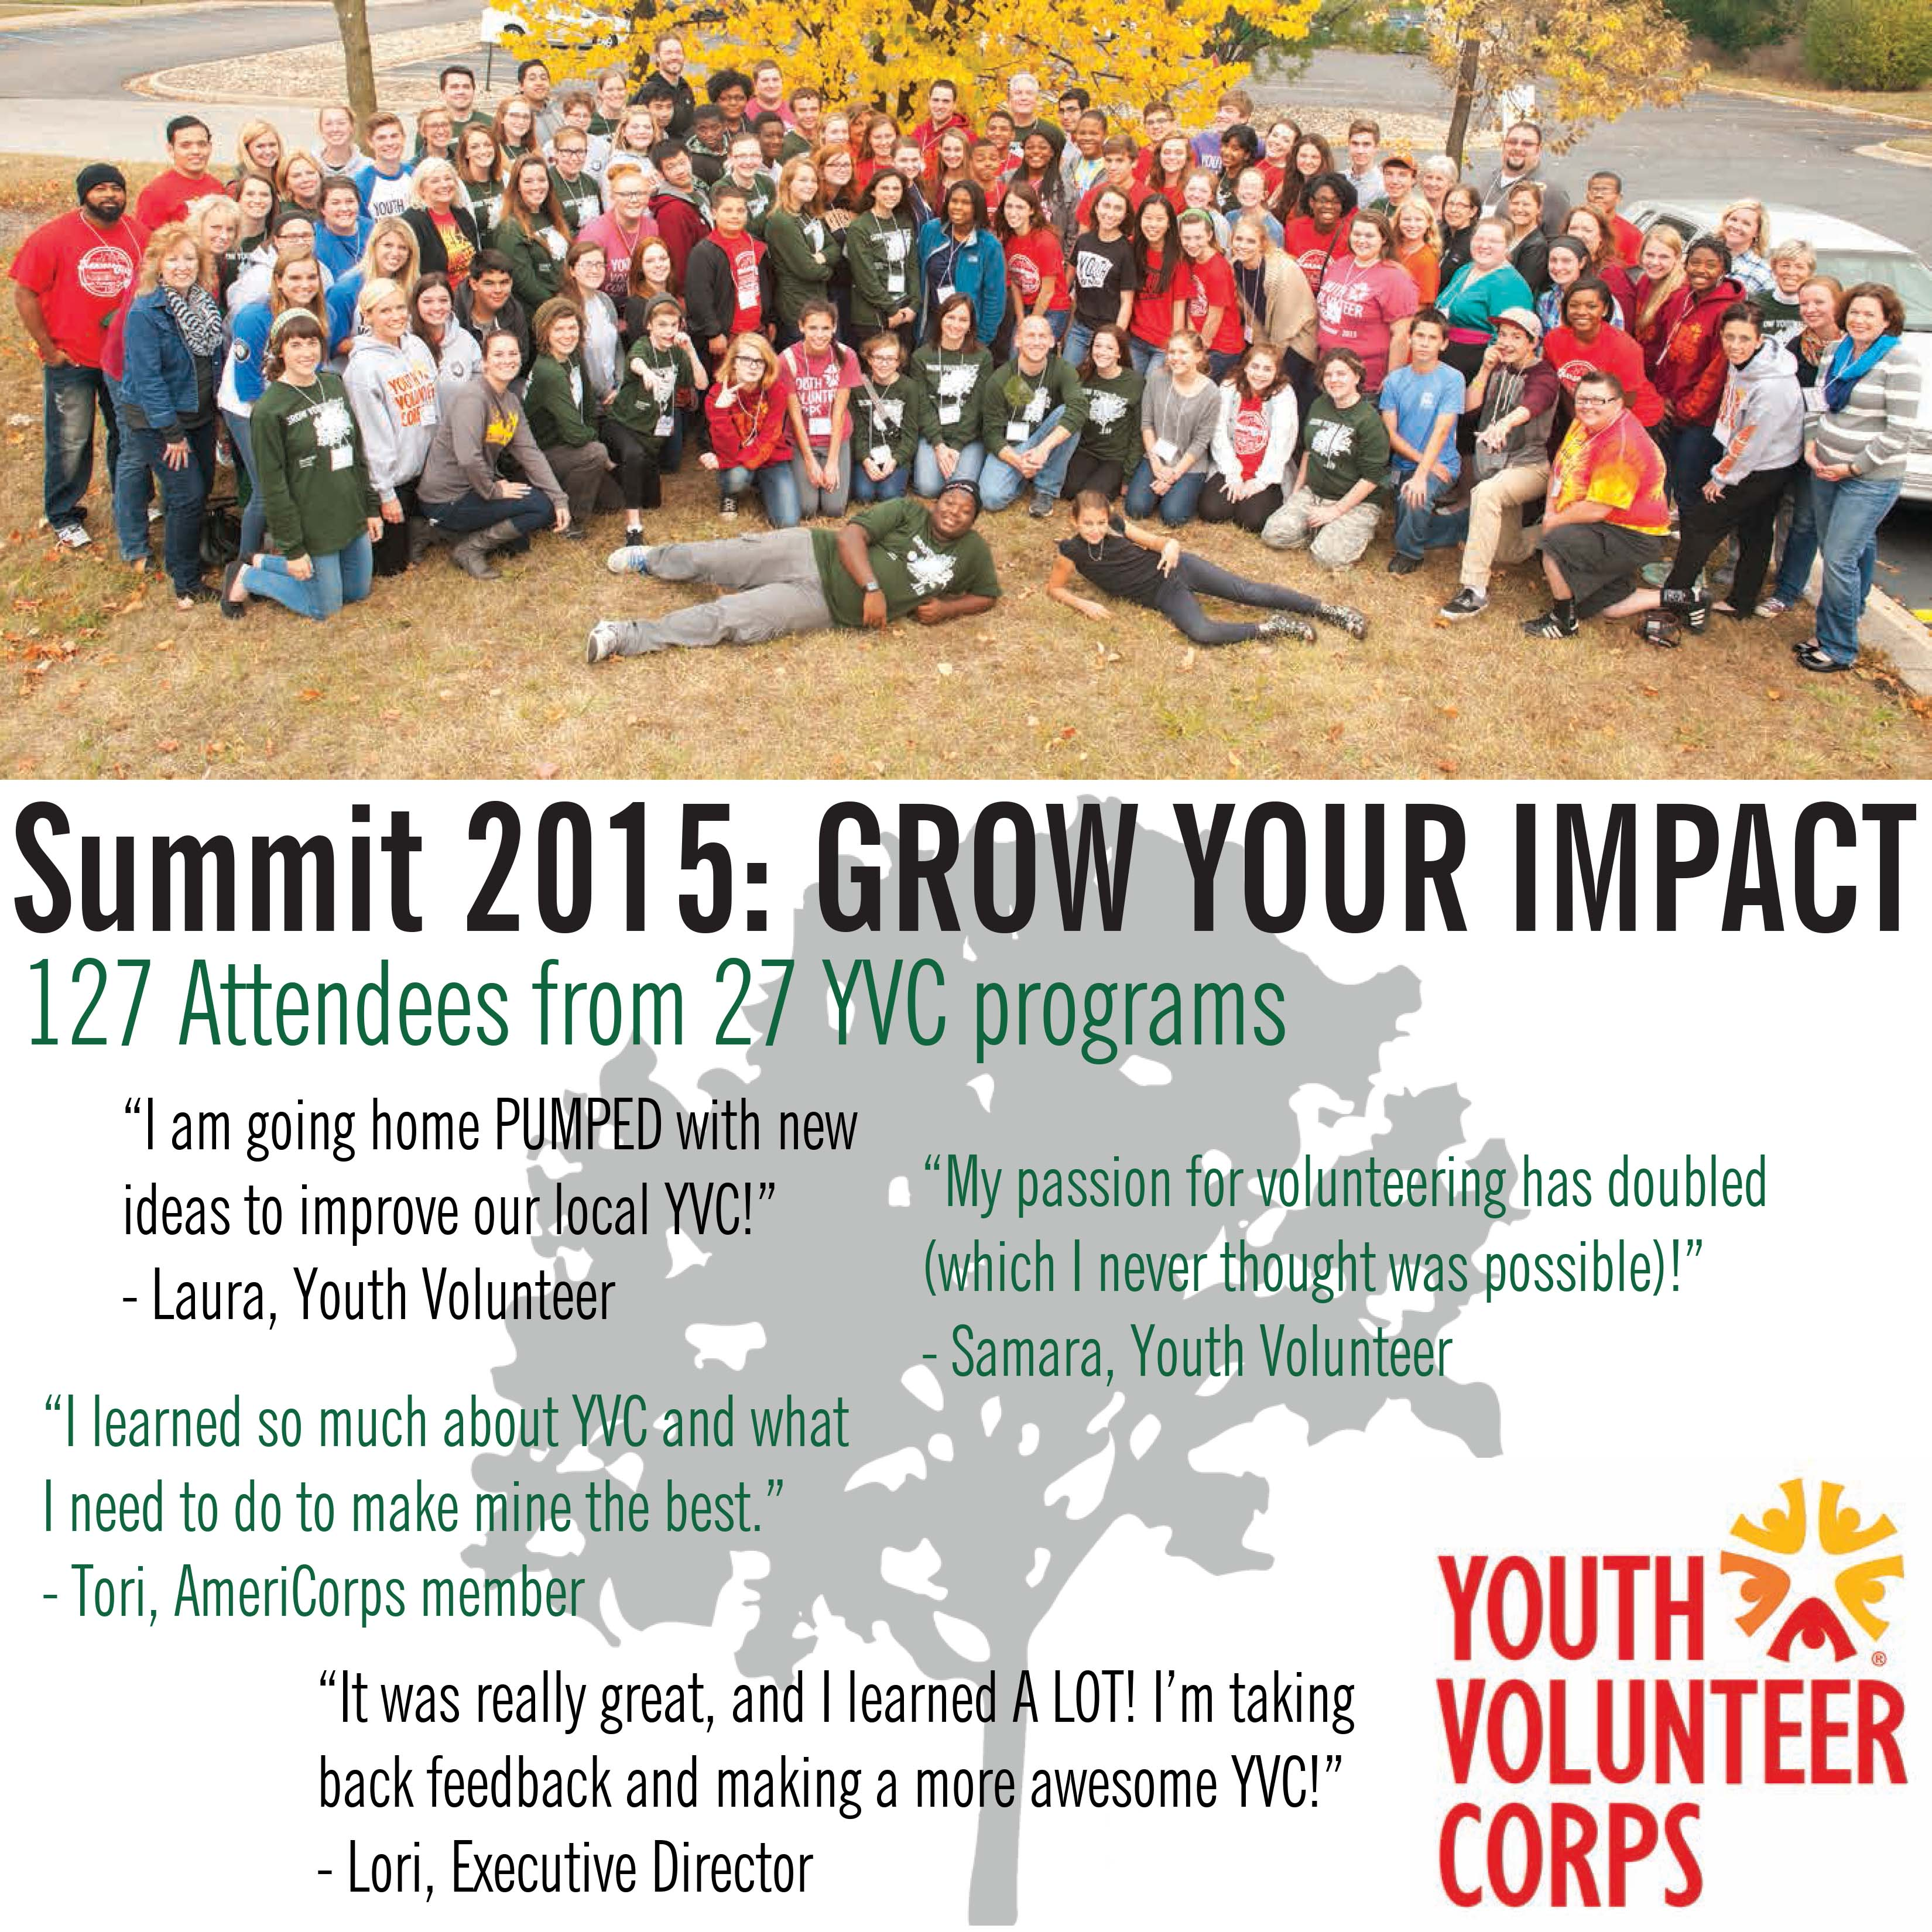 Looking Back on Summit 2015: Grow Your Impact